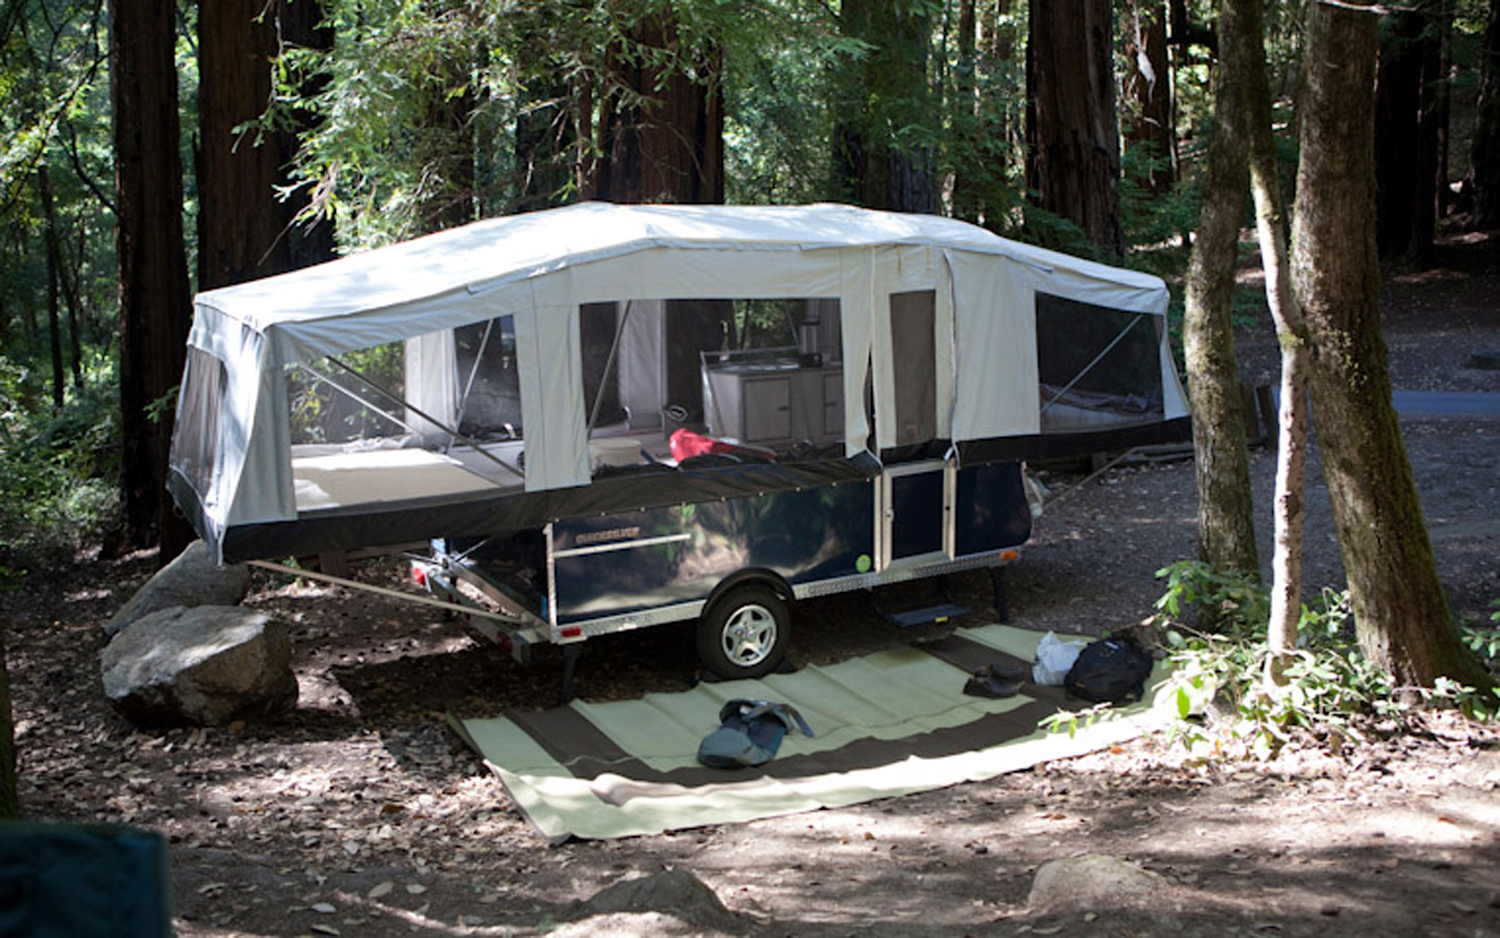 Camping Trailer Camper Photo Gallery